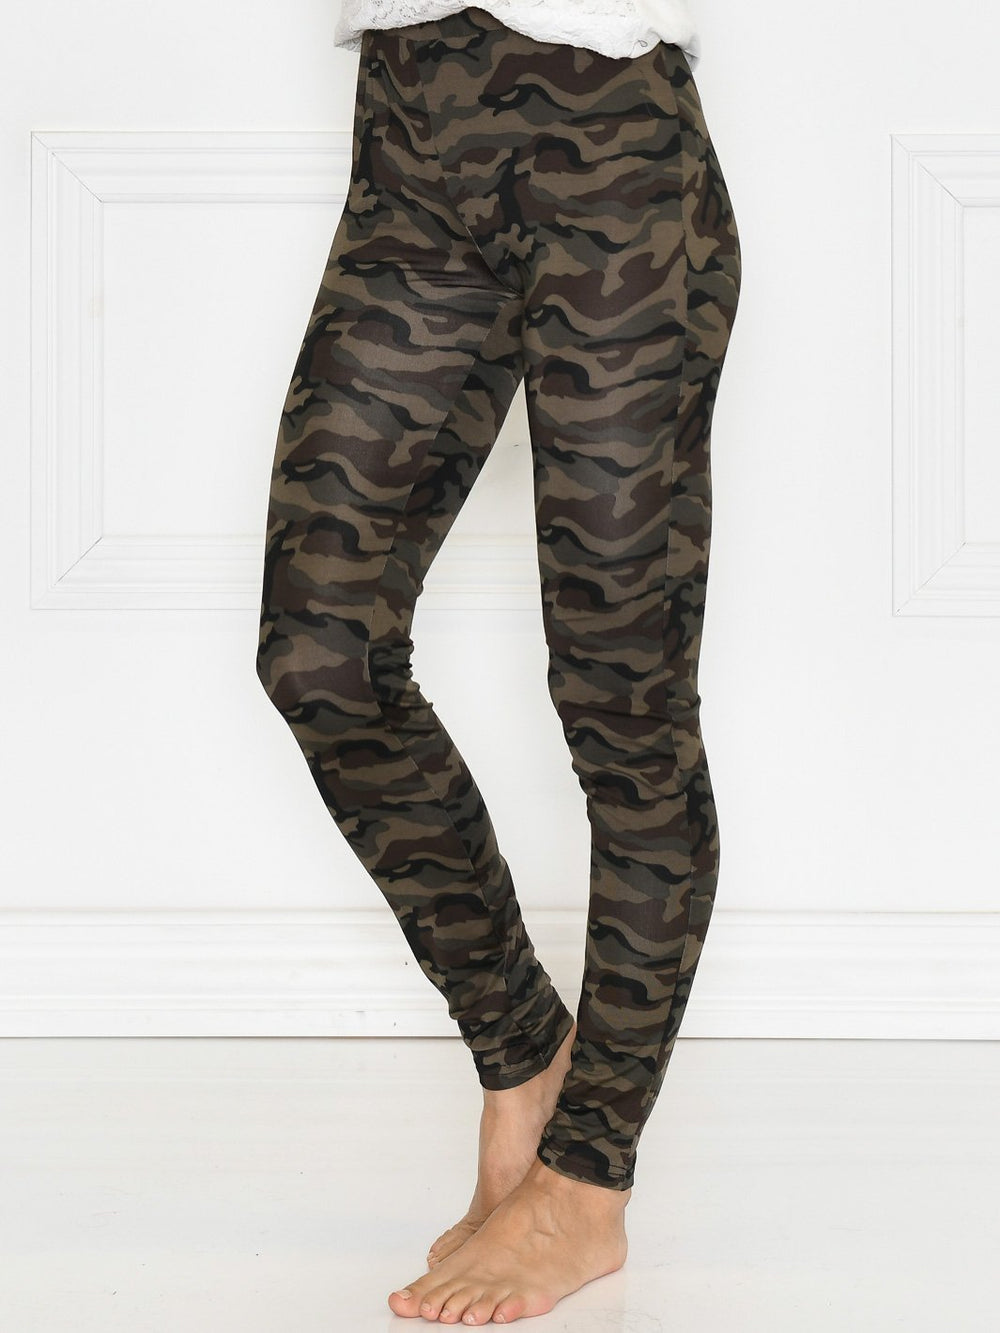 Kaffe KApappi printed leggings green/brown army print - Online-Mode